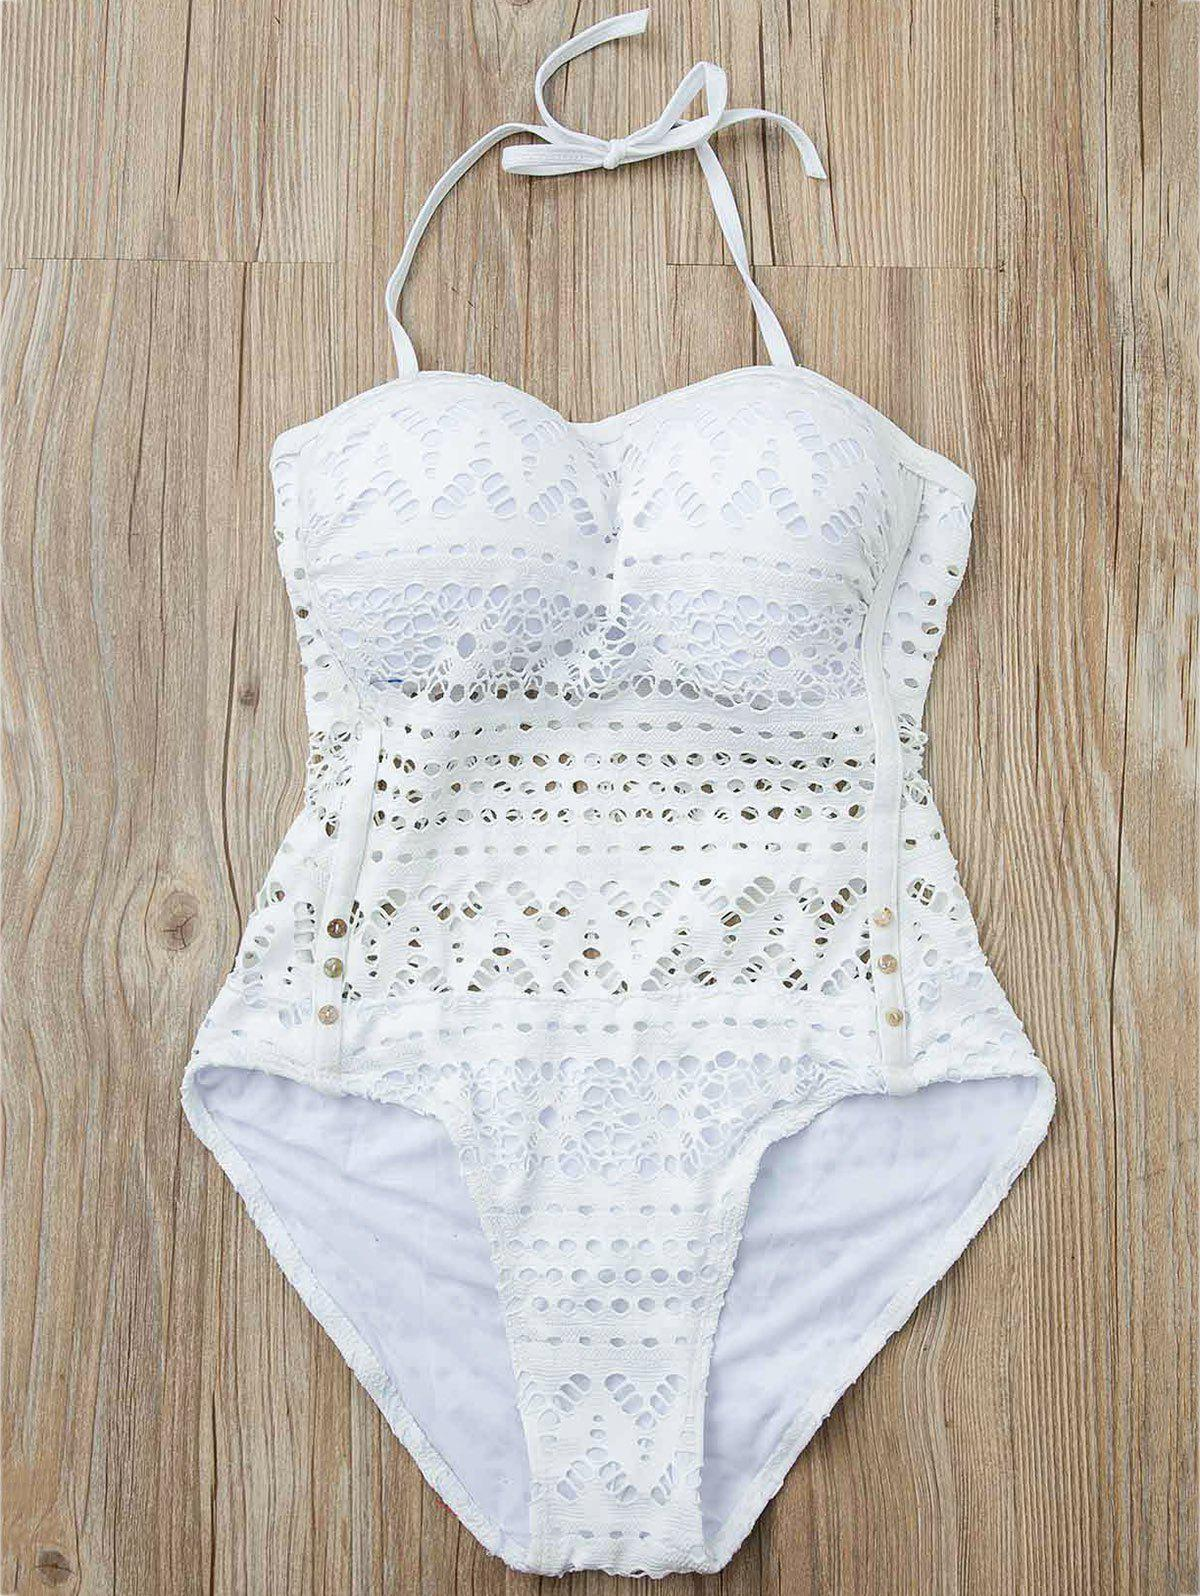 Stylish Women's Halter Hollow Out Mesh Spliced One-Piece Swimsuit - WHITE M